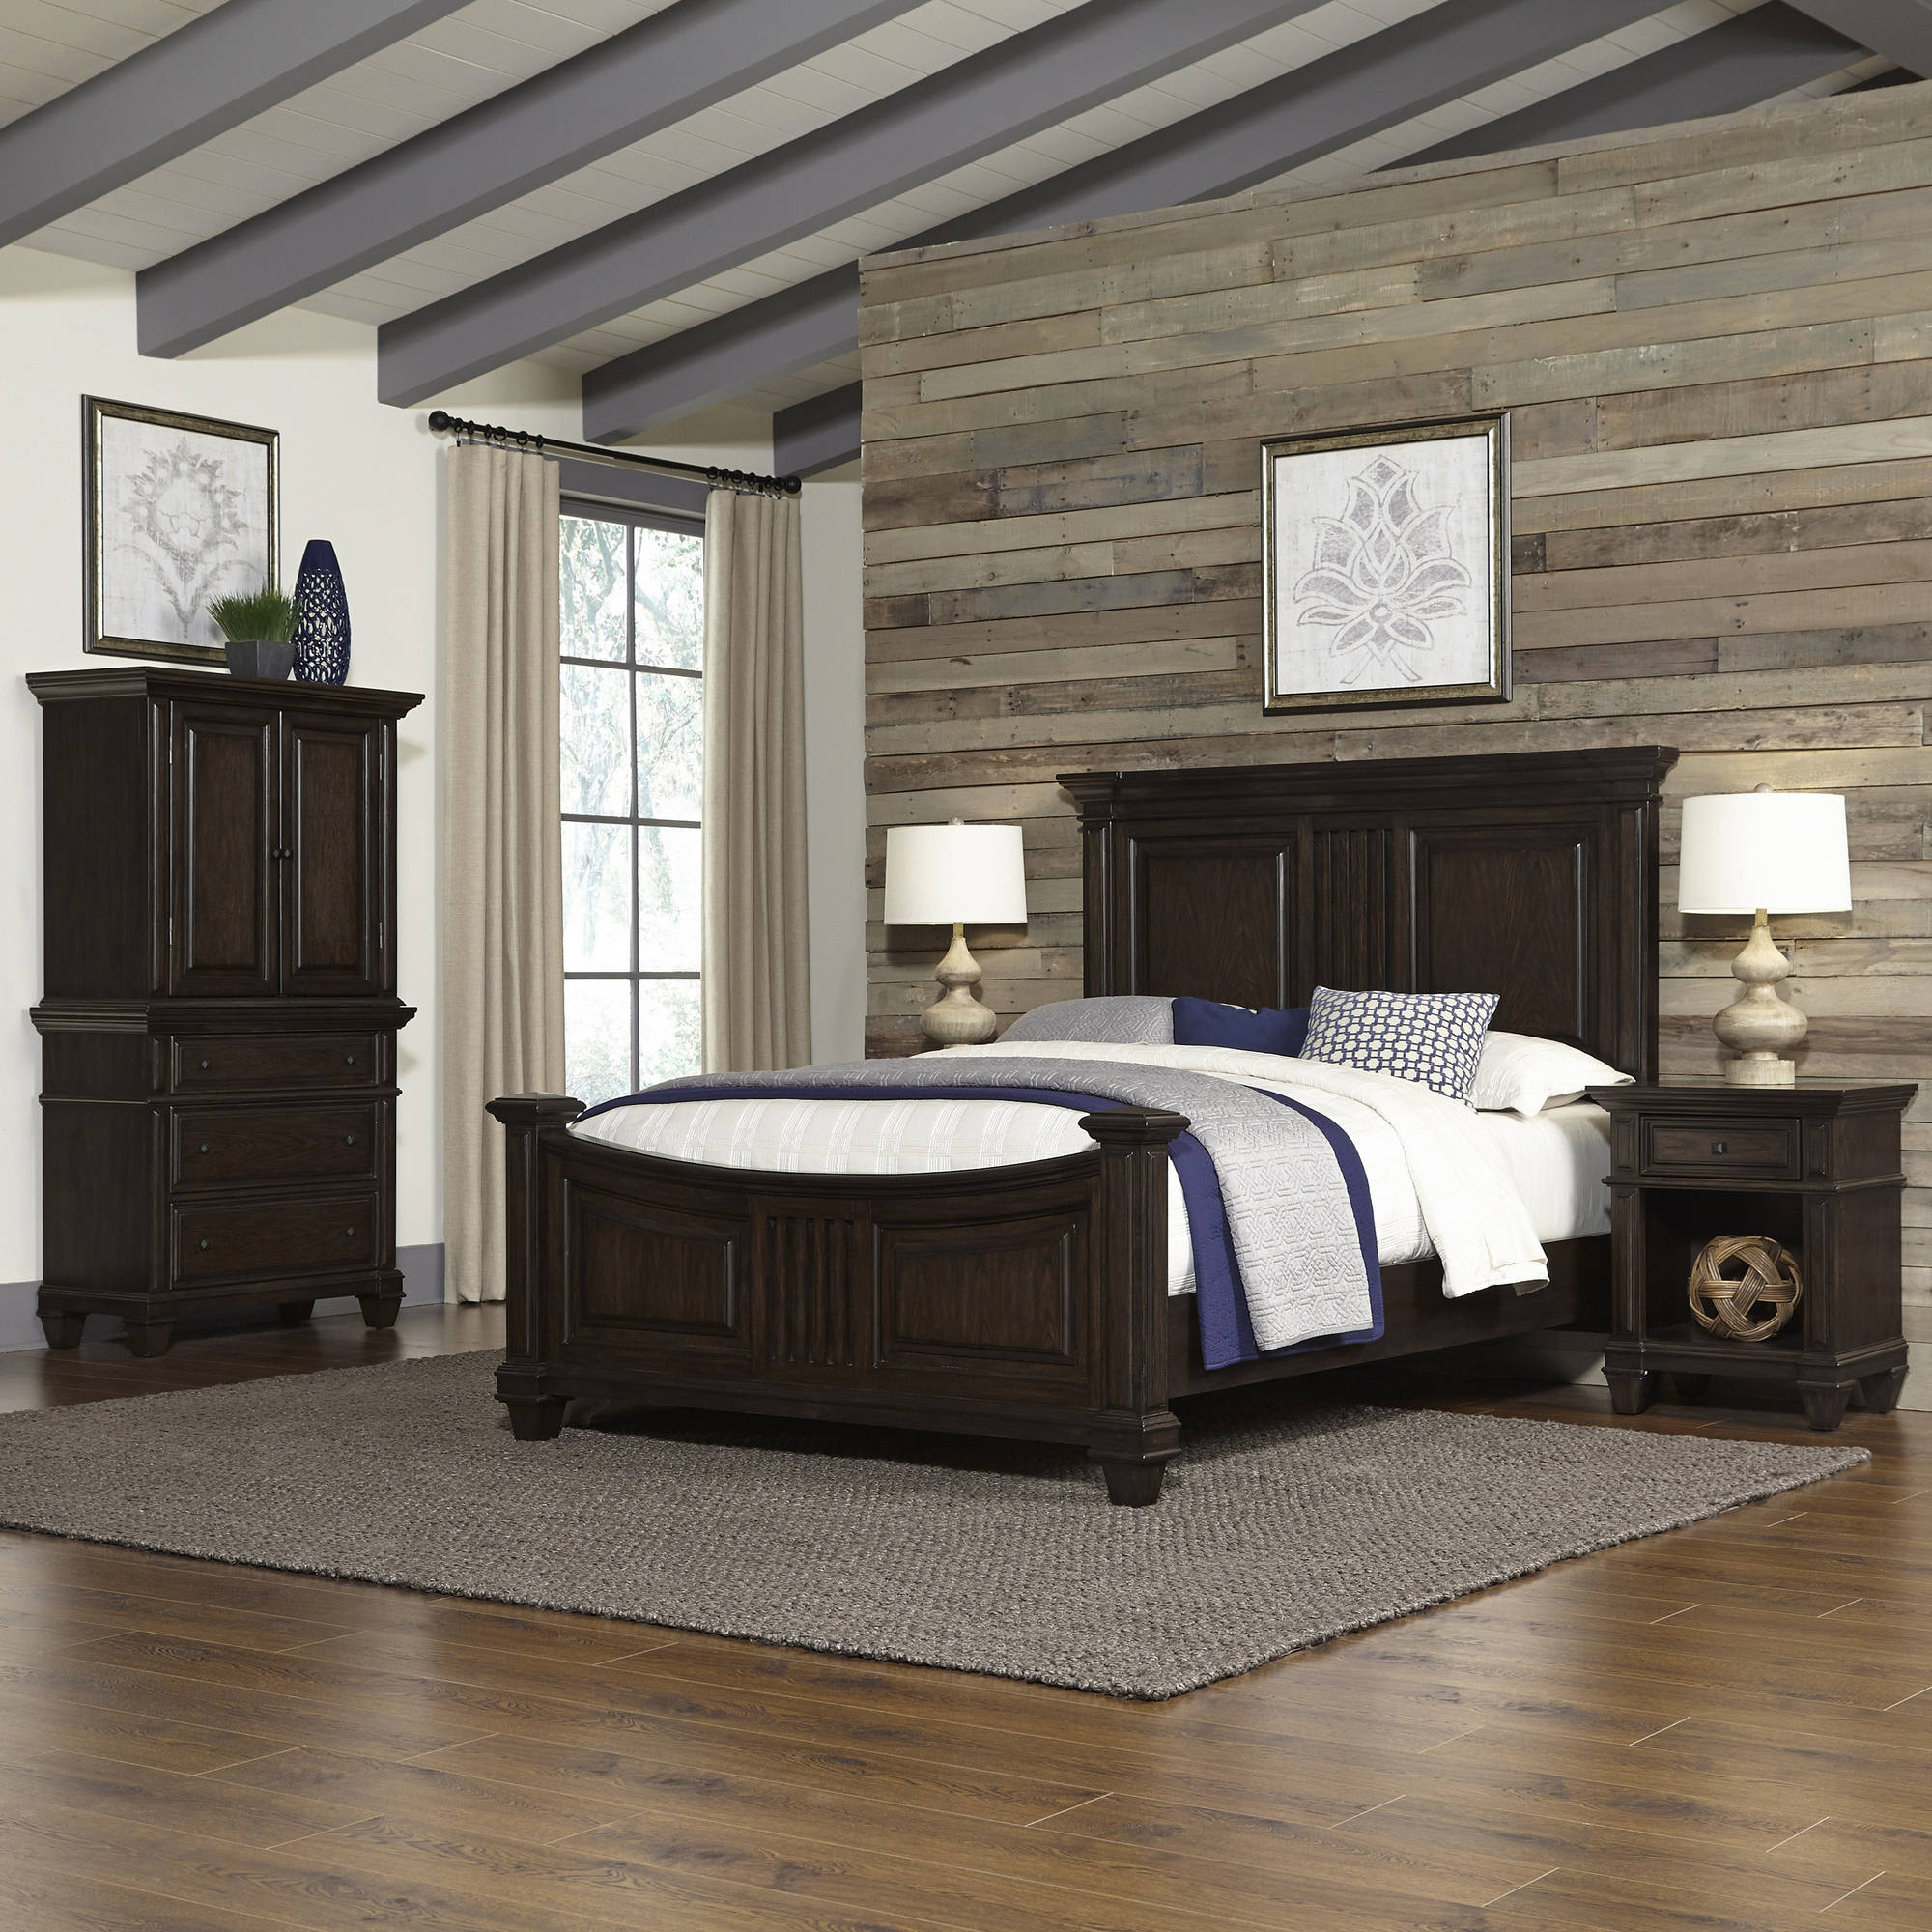 Prairie Home Queen Bed, Two Night Stands, and Chest